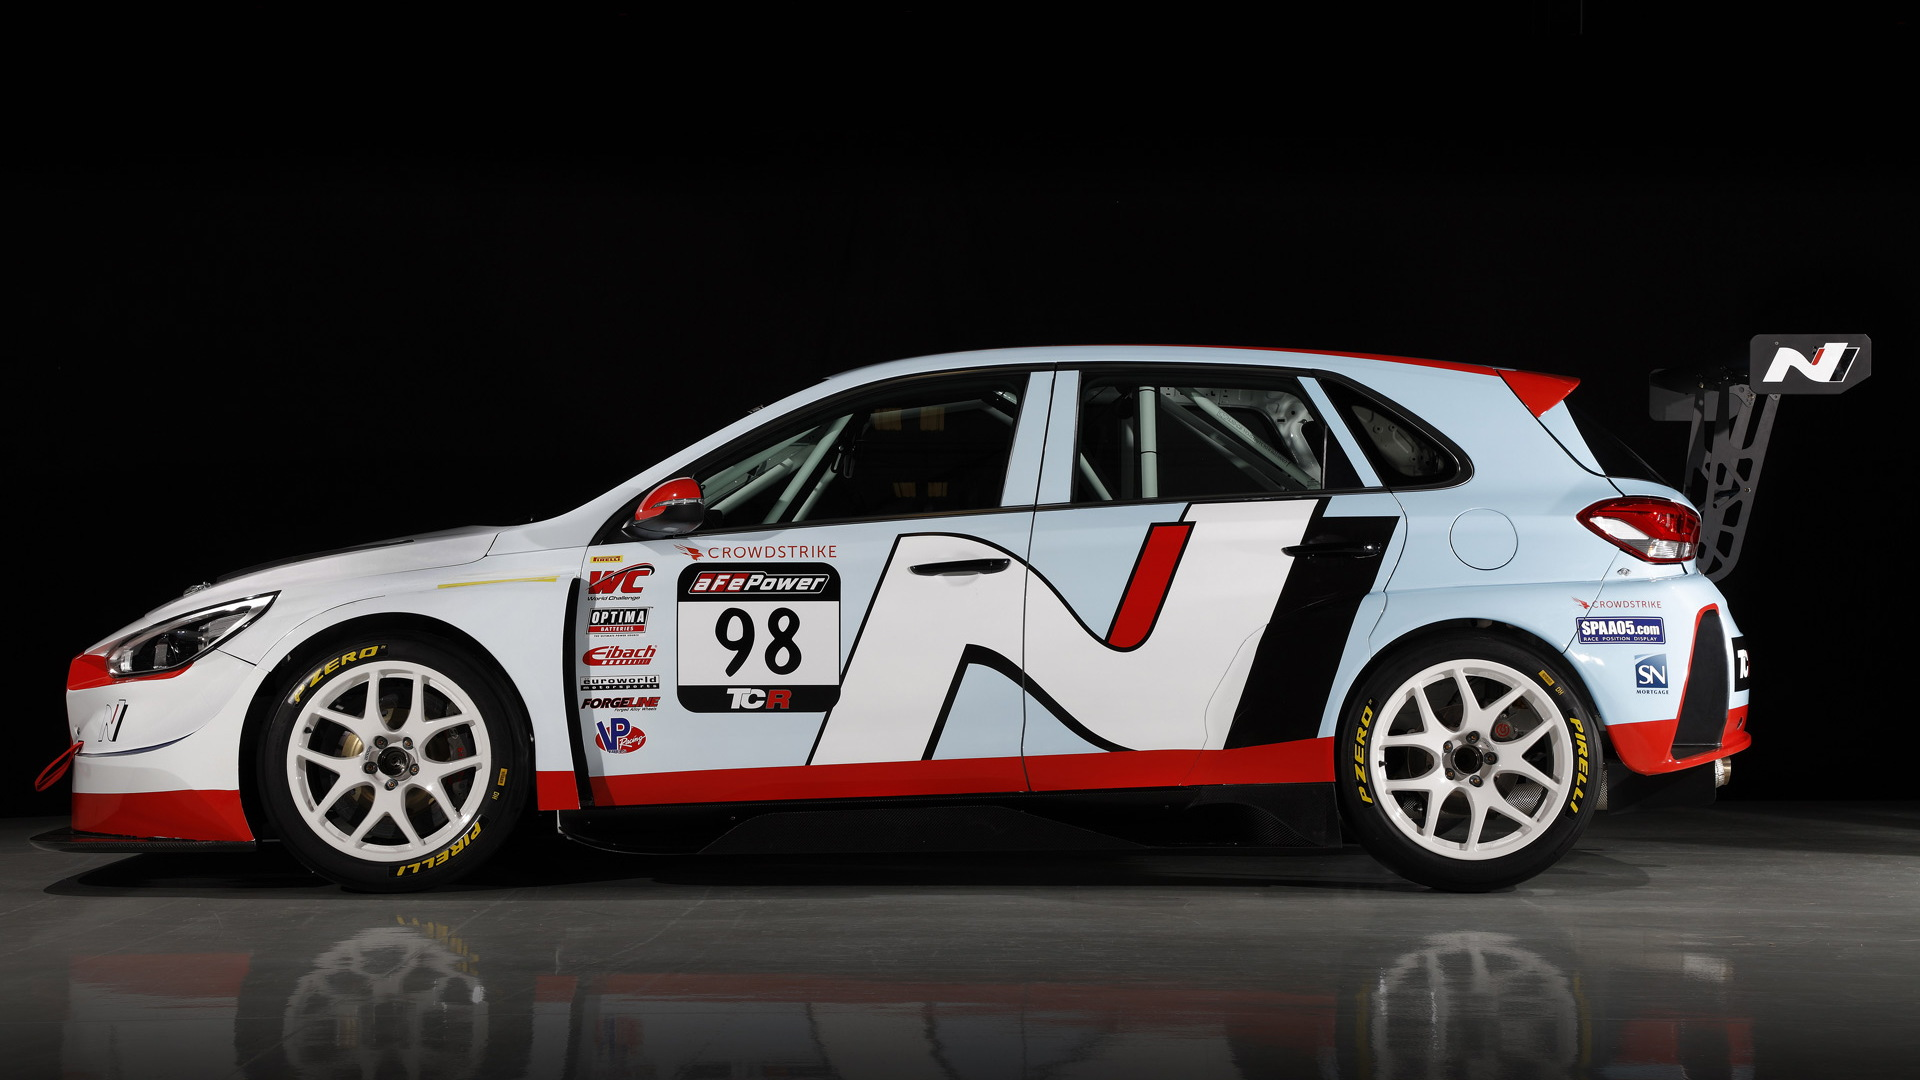 2018 Hyundai i30 N TCR race car